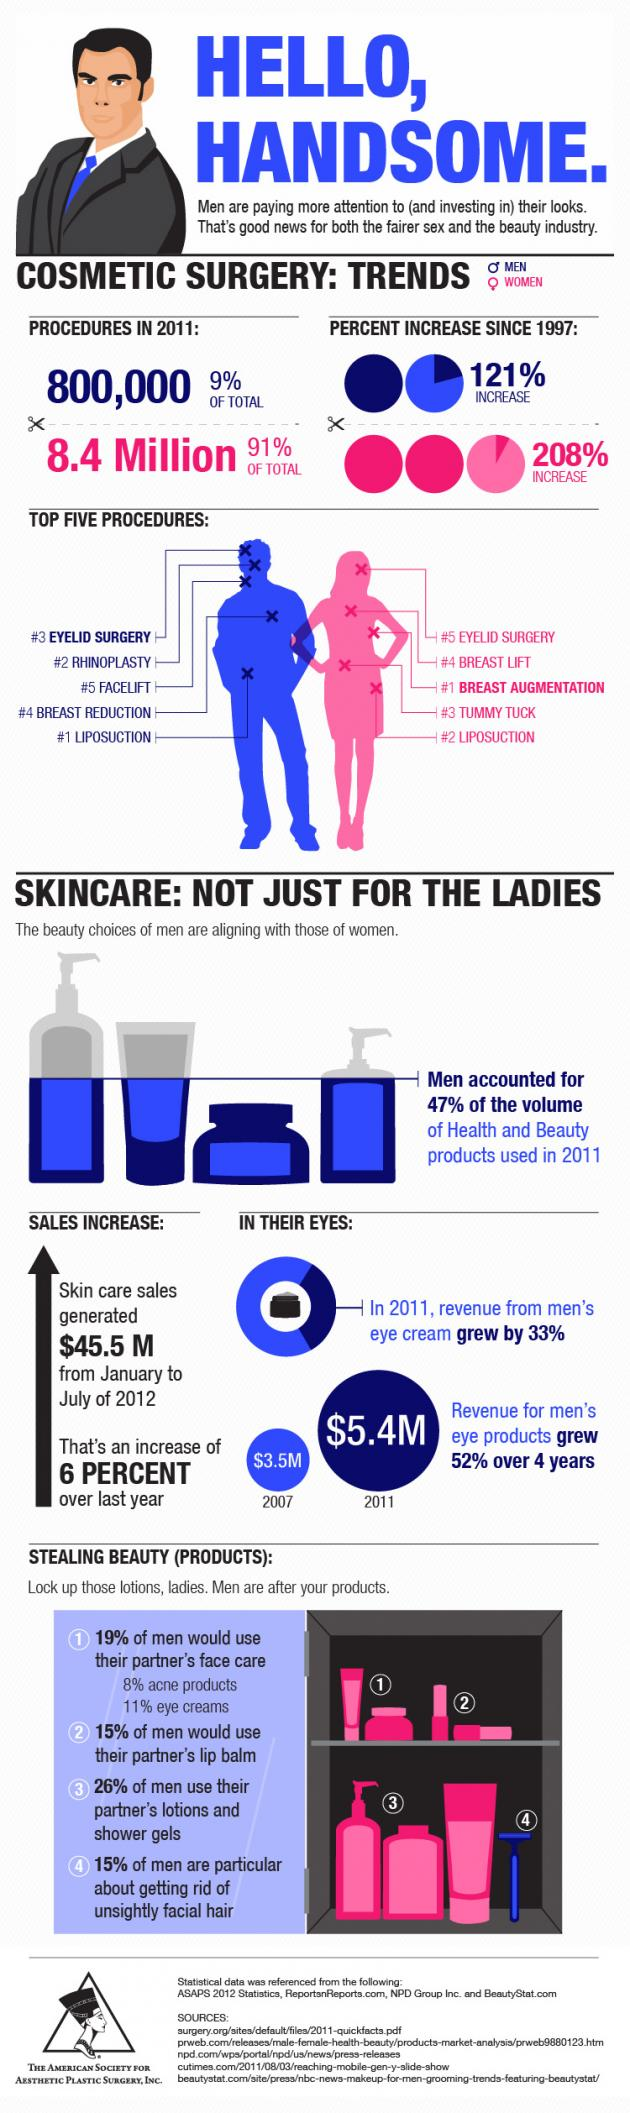 Plastic surgery and skin care trends for men